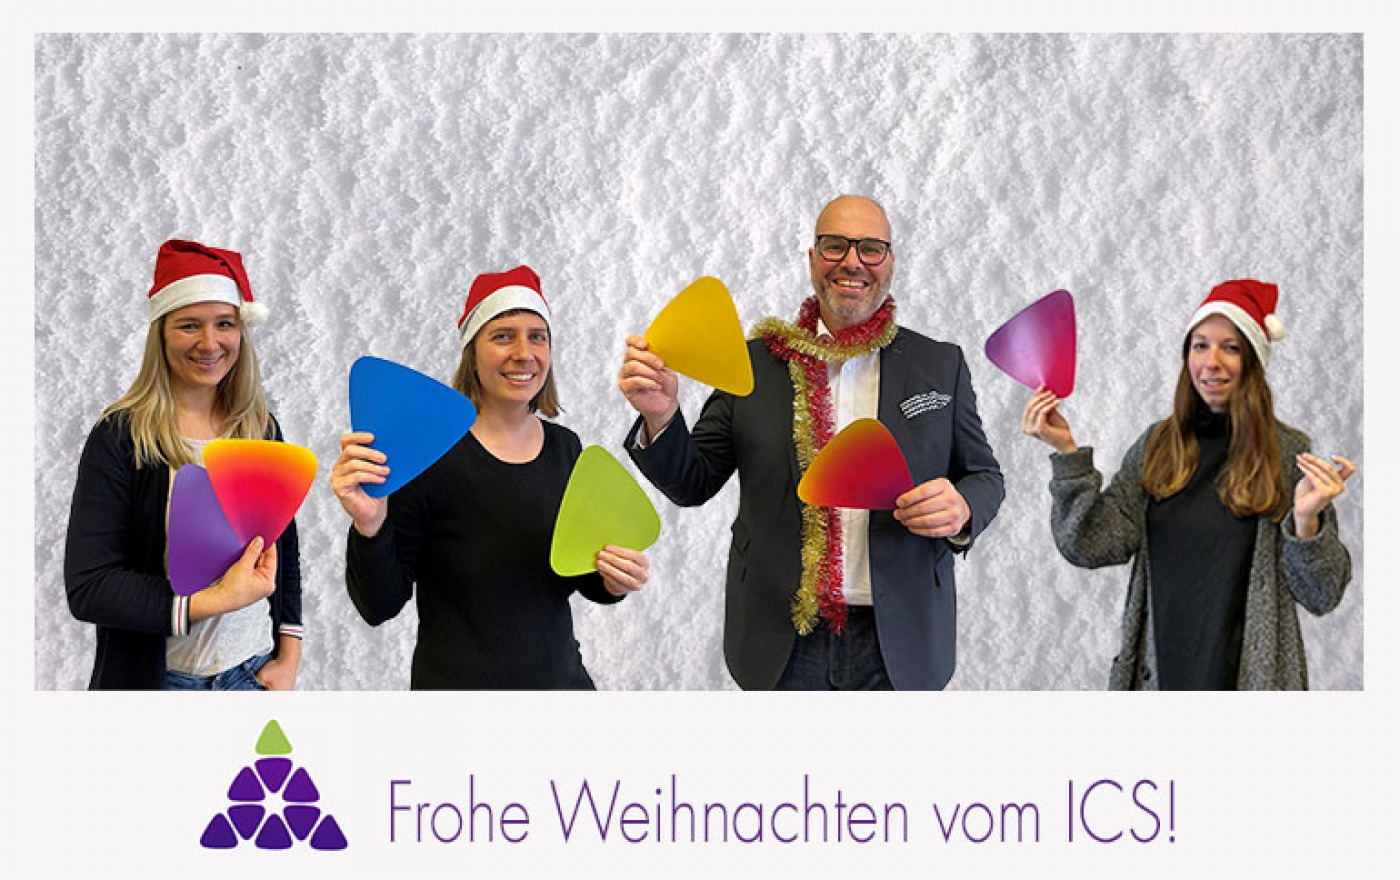 We wish you a merry ICS-mas and a happy new year!